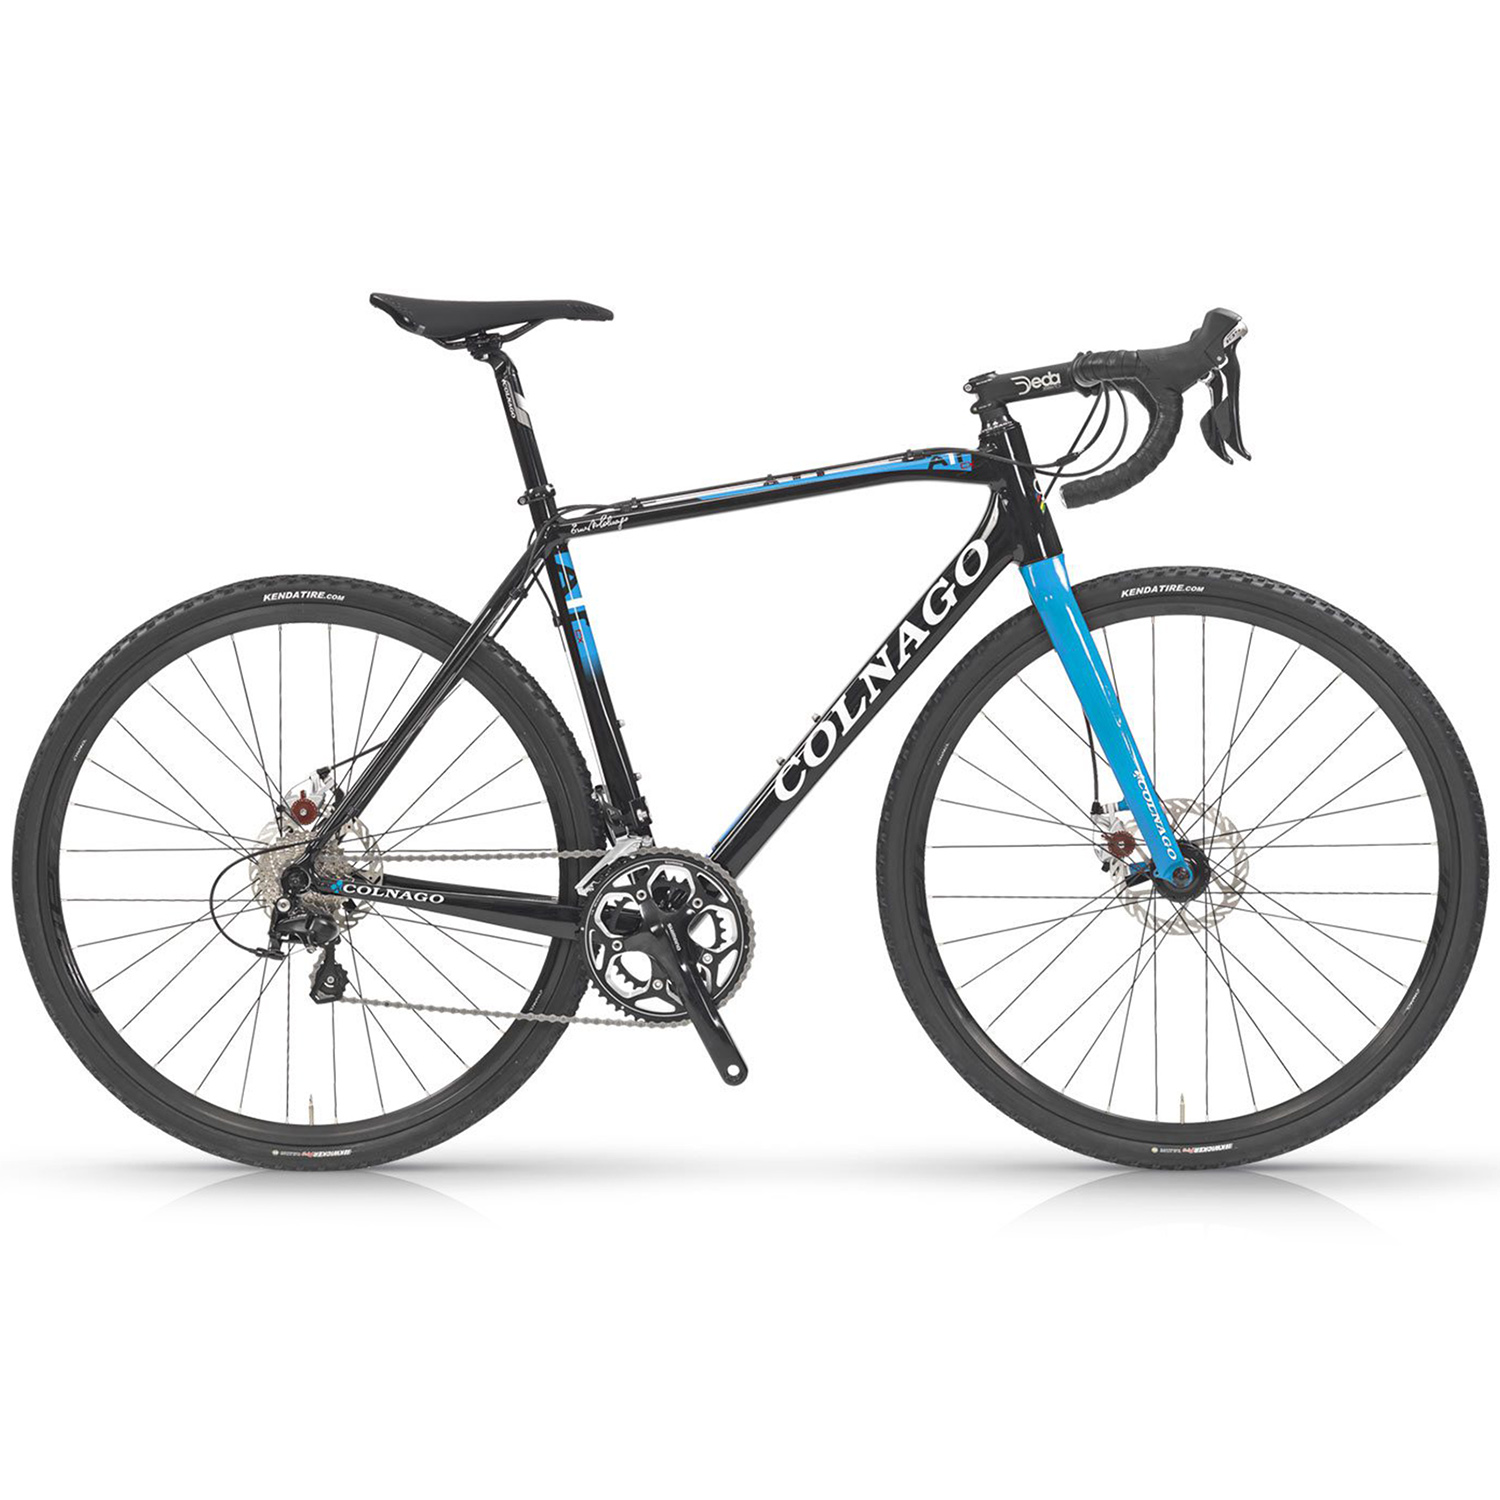 Colnago A1R CX 105 Cyclocross Bike - 2018